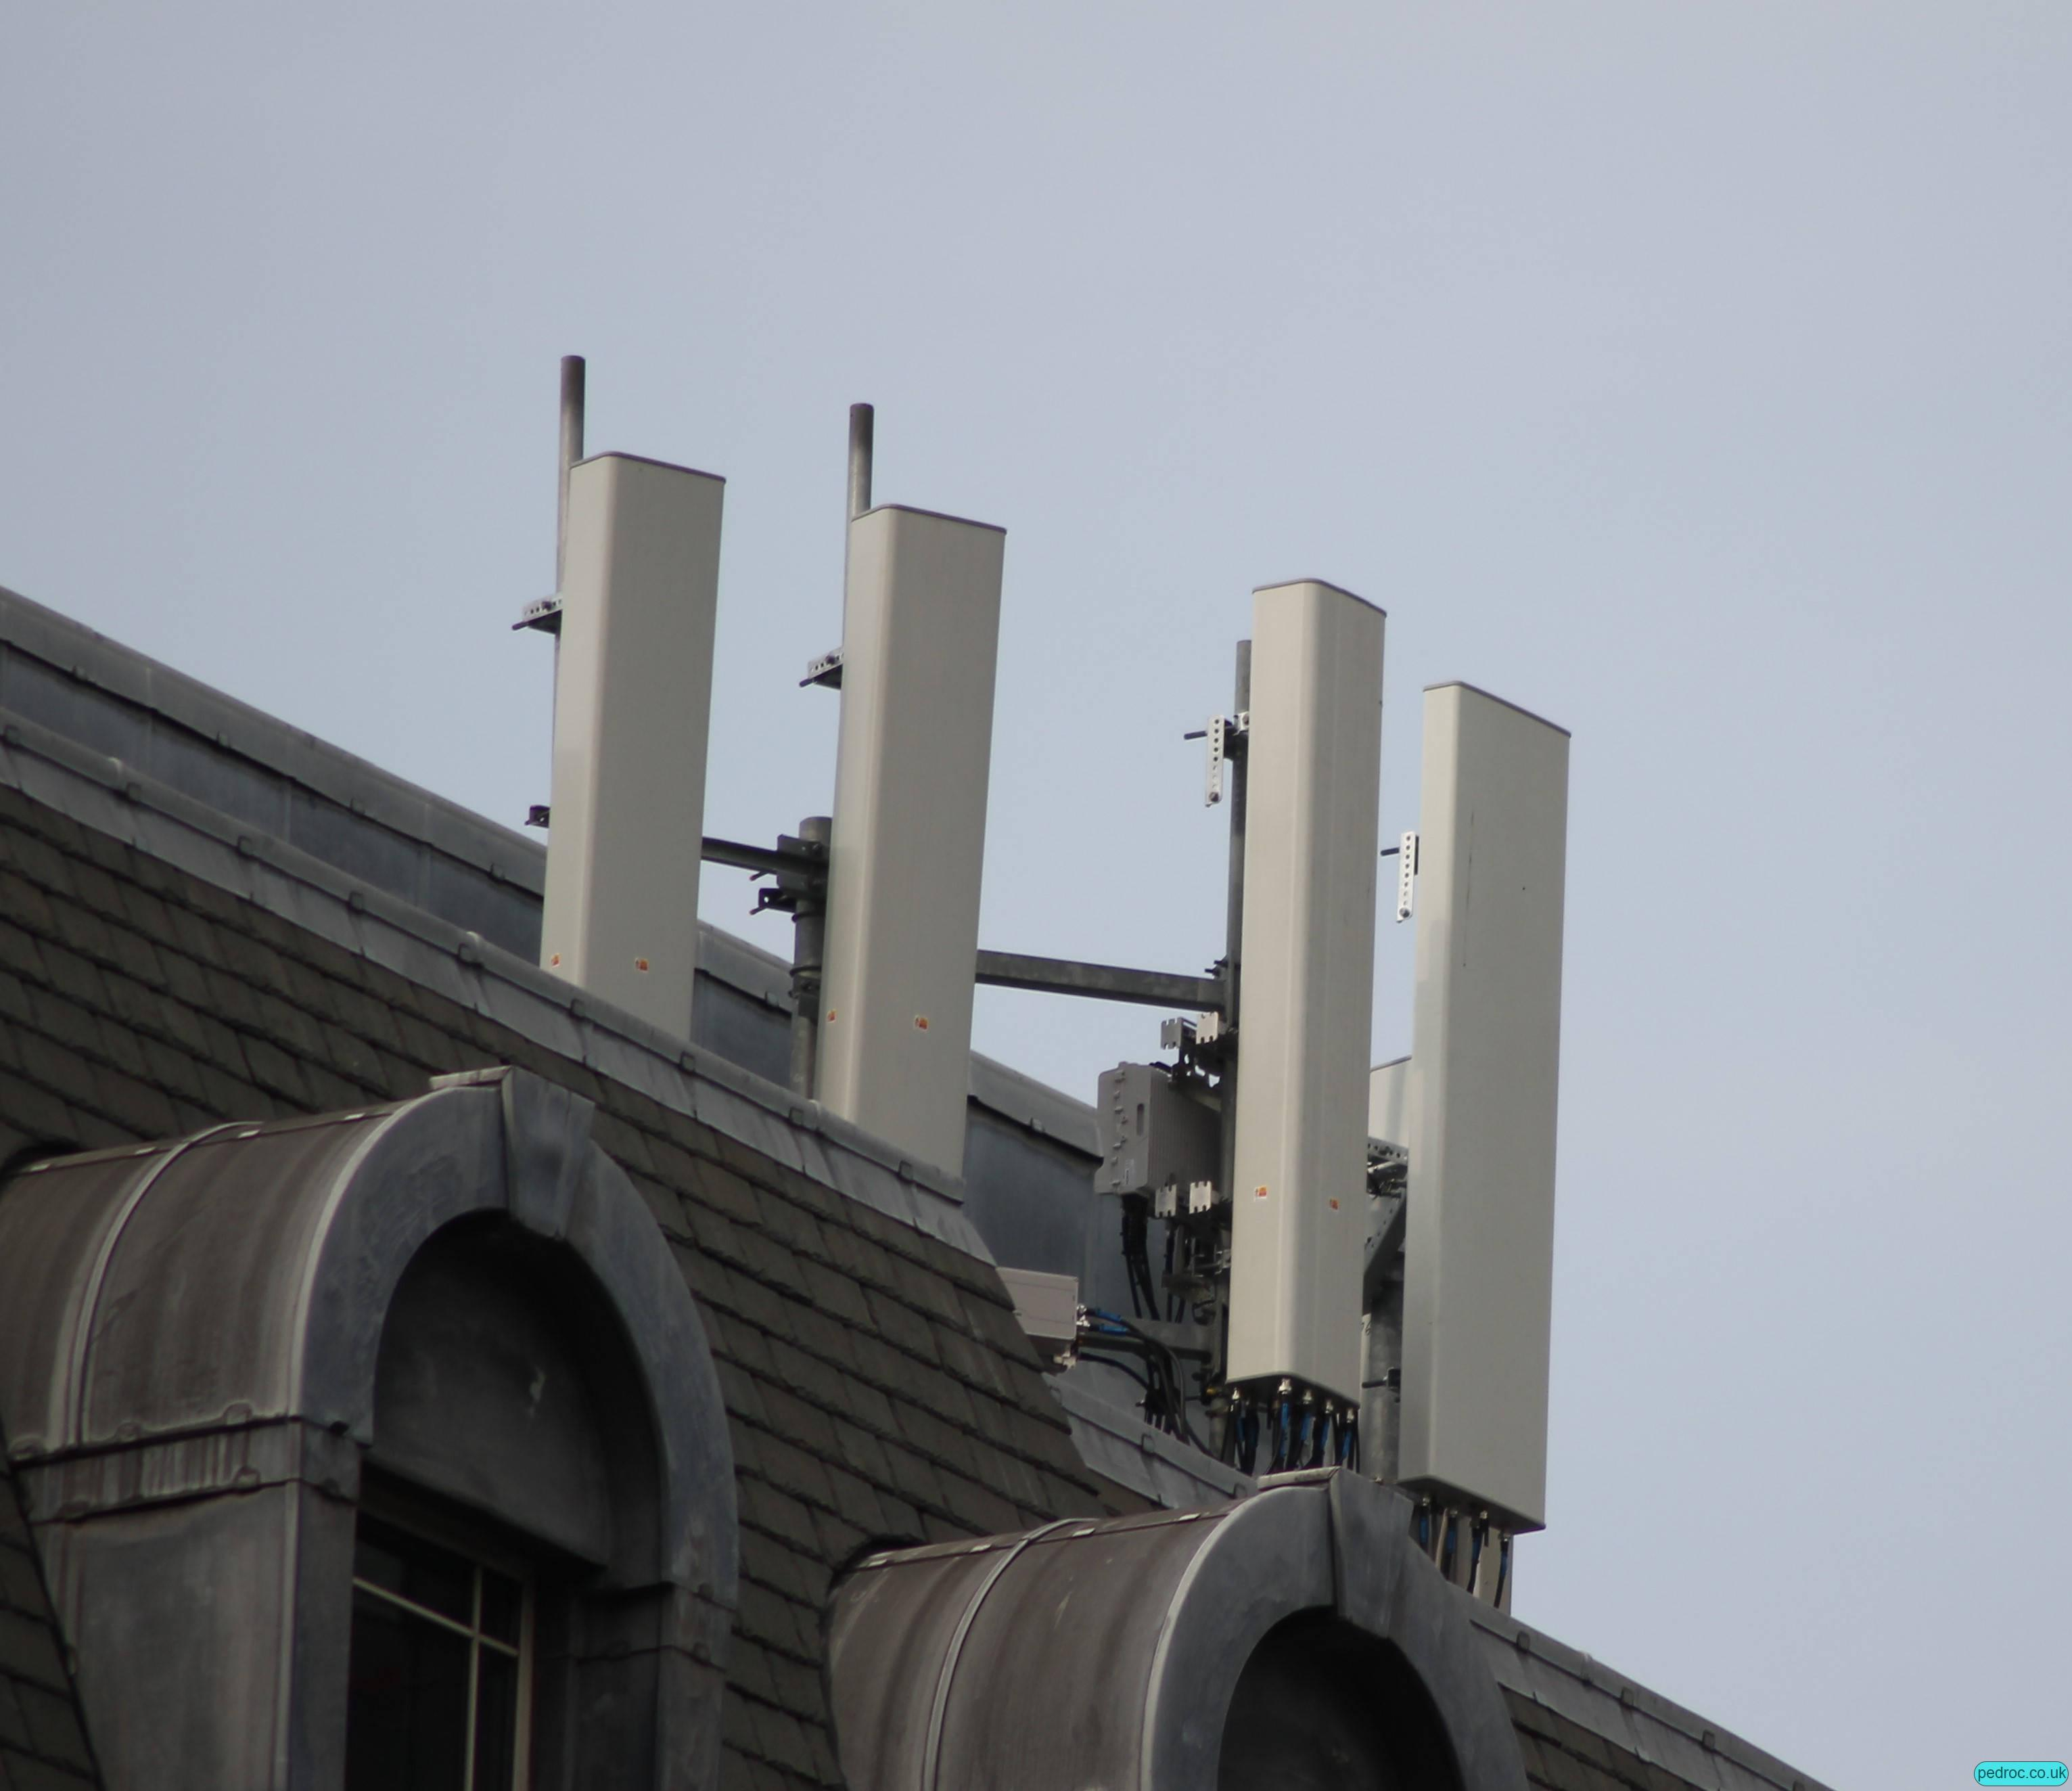 Full London Beacon 2 Structure only share where Vodafone and o2 have separate antennas. O2 with Commscope 2CPX208R (dual beam U09+L08) and CVV2NPX308.208R (G09+L23 4T4R+dual beam L18 and L21)